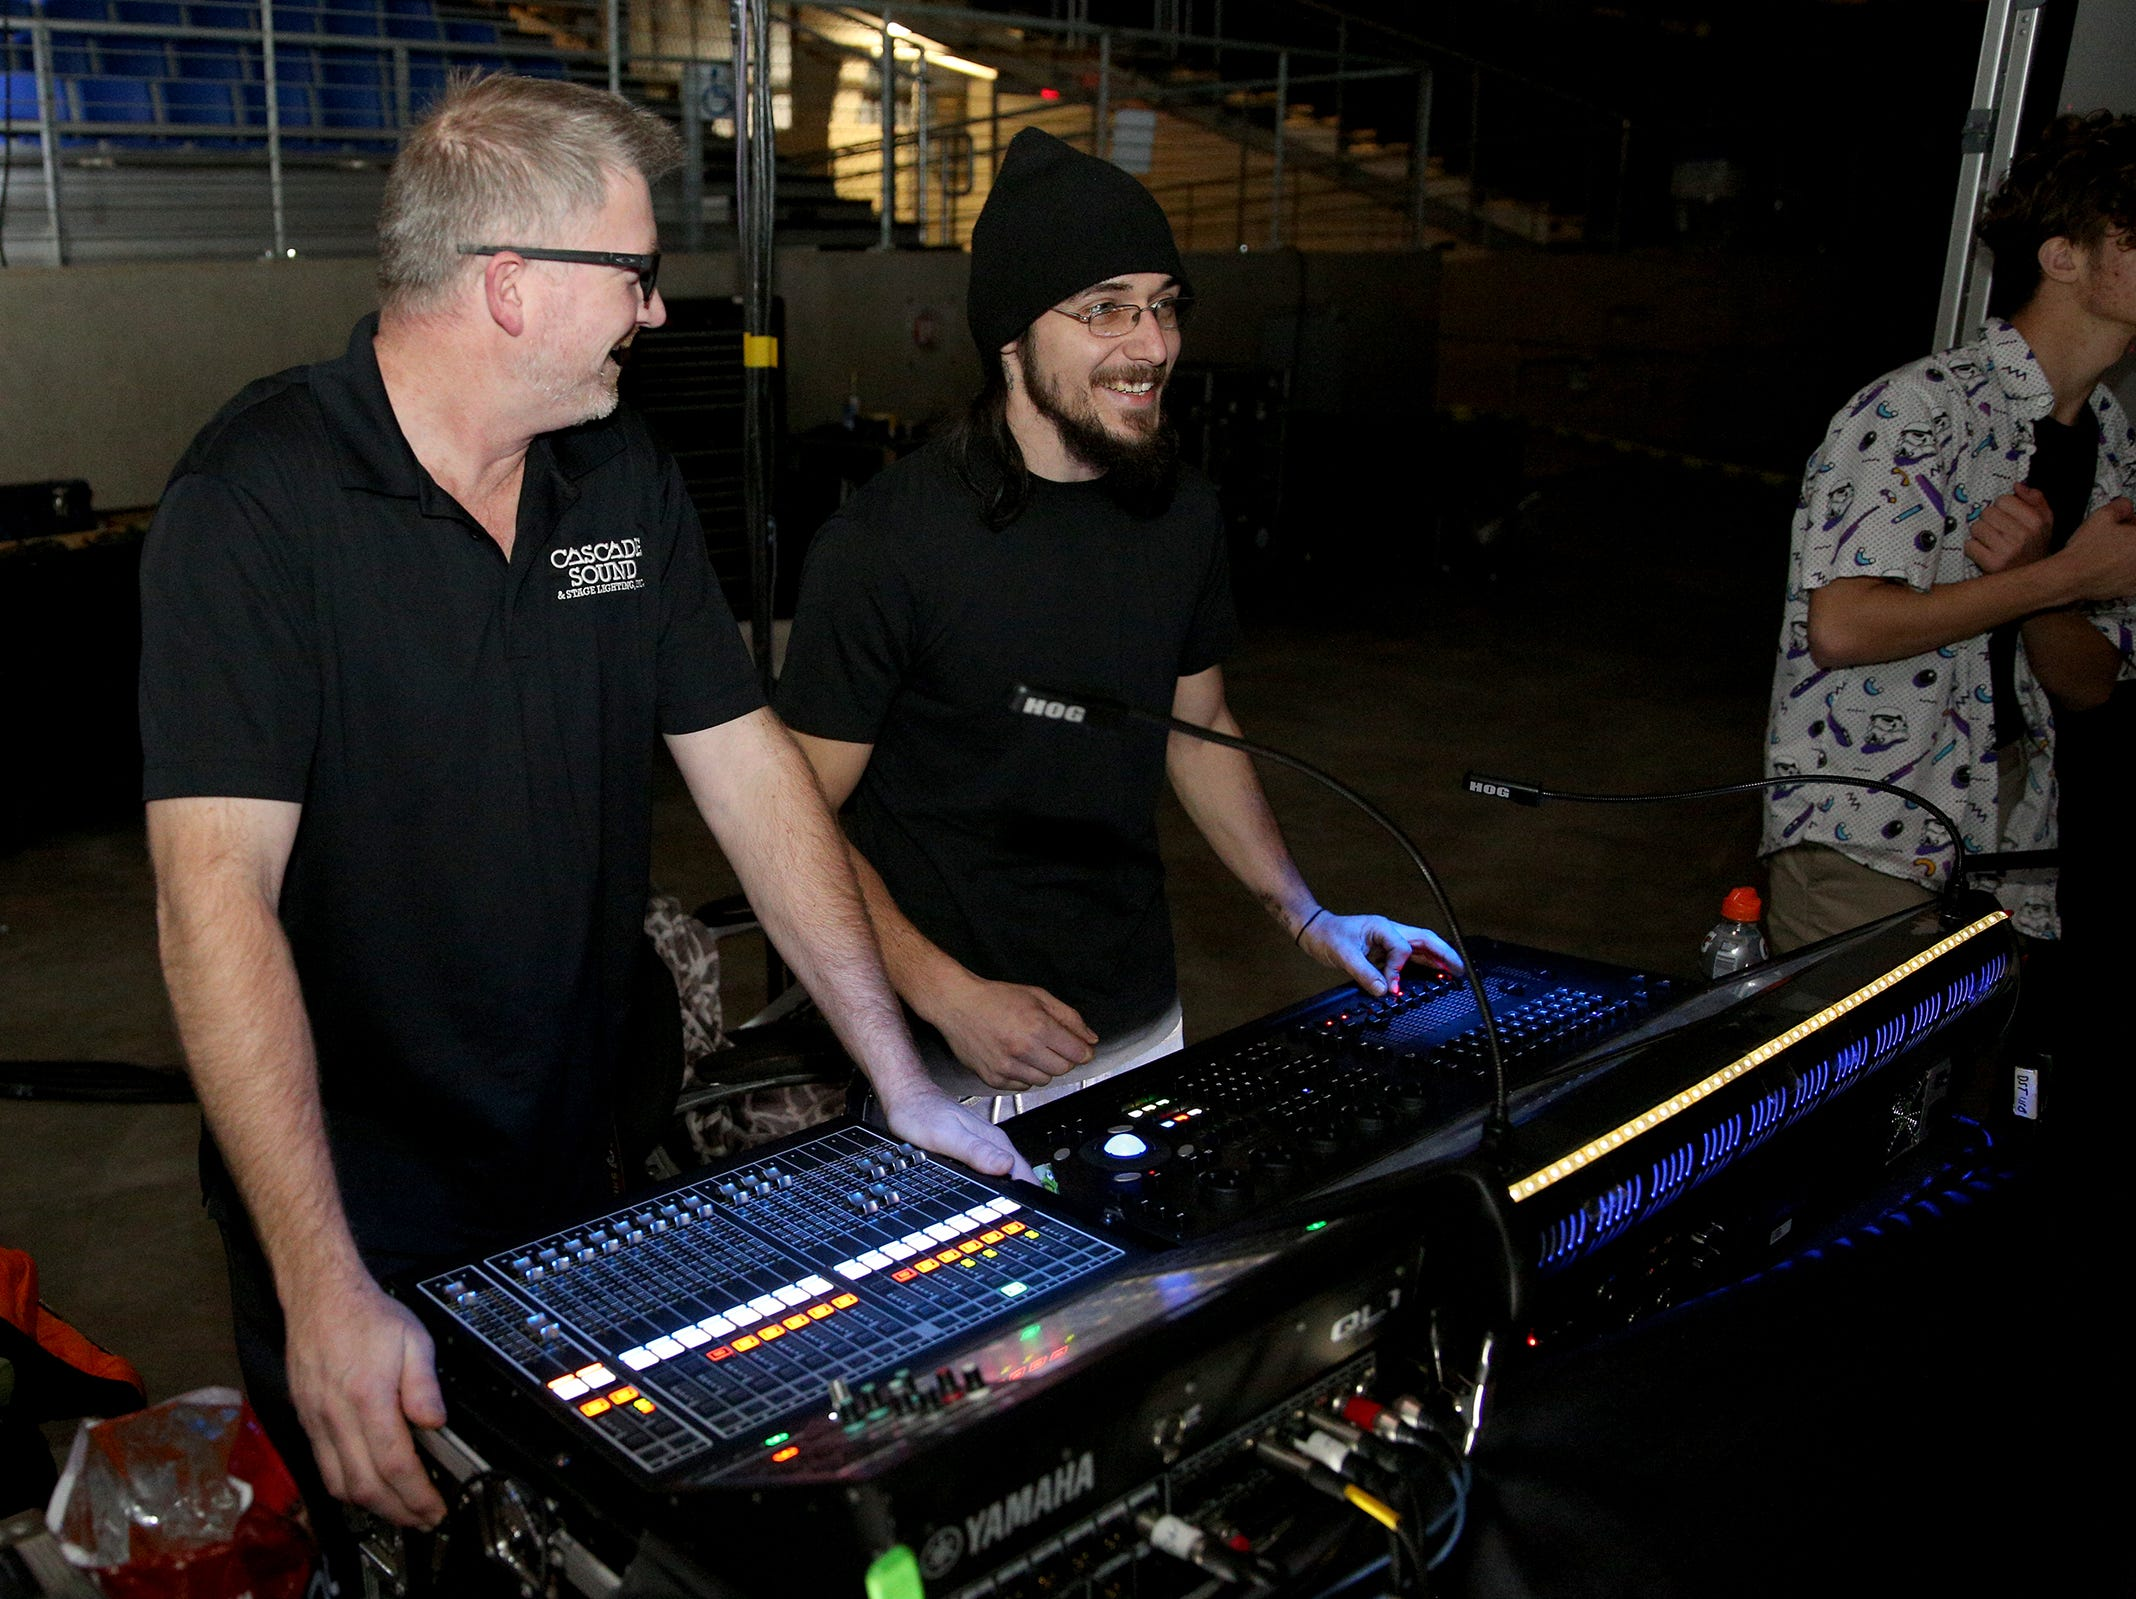 Cascade Sound DJs Trevor Moser and Cash Augustine play songs during the annual SnoBall at the Oregon State Fairgrounds Pavilion in Salem on Saturday, Dec. 1, 2018. The company has been working the event for at least 20 years now.